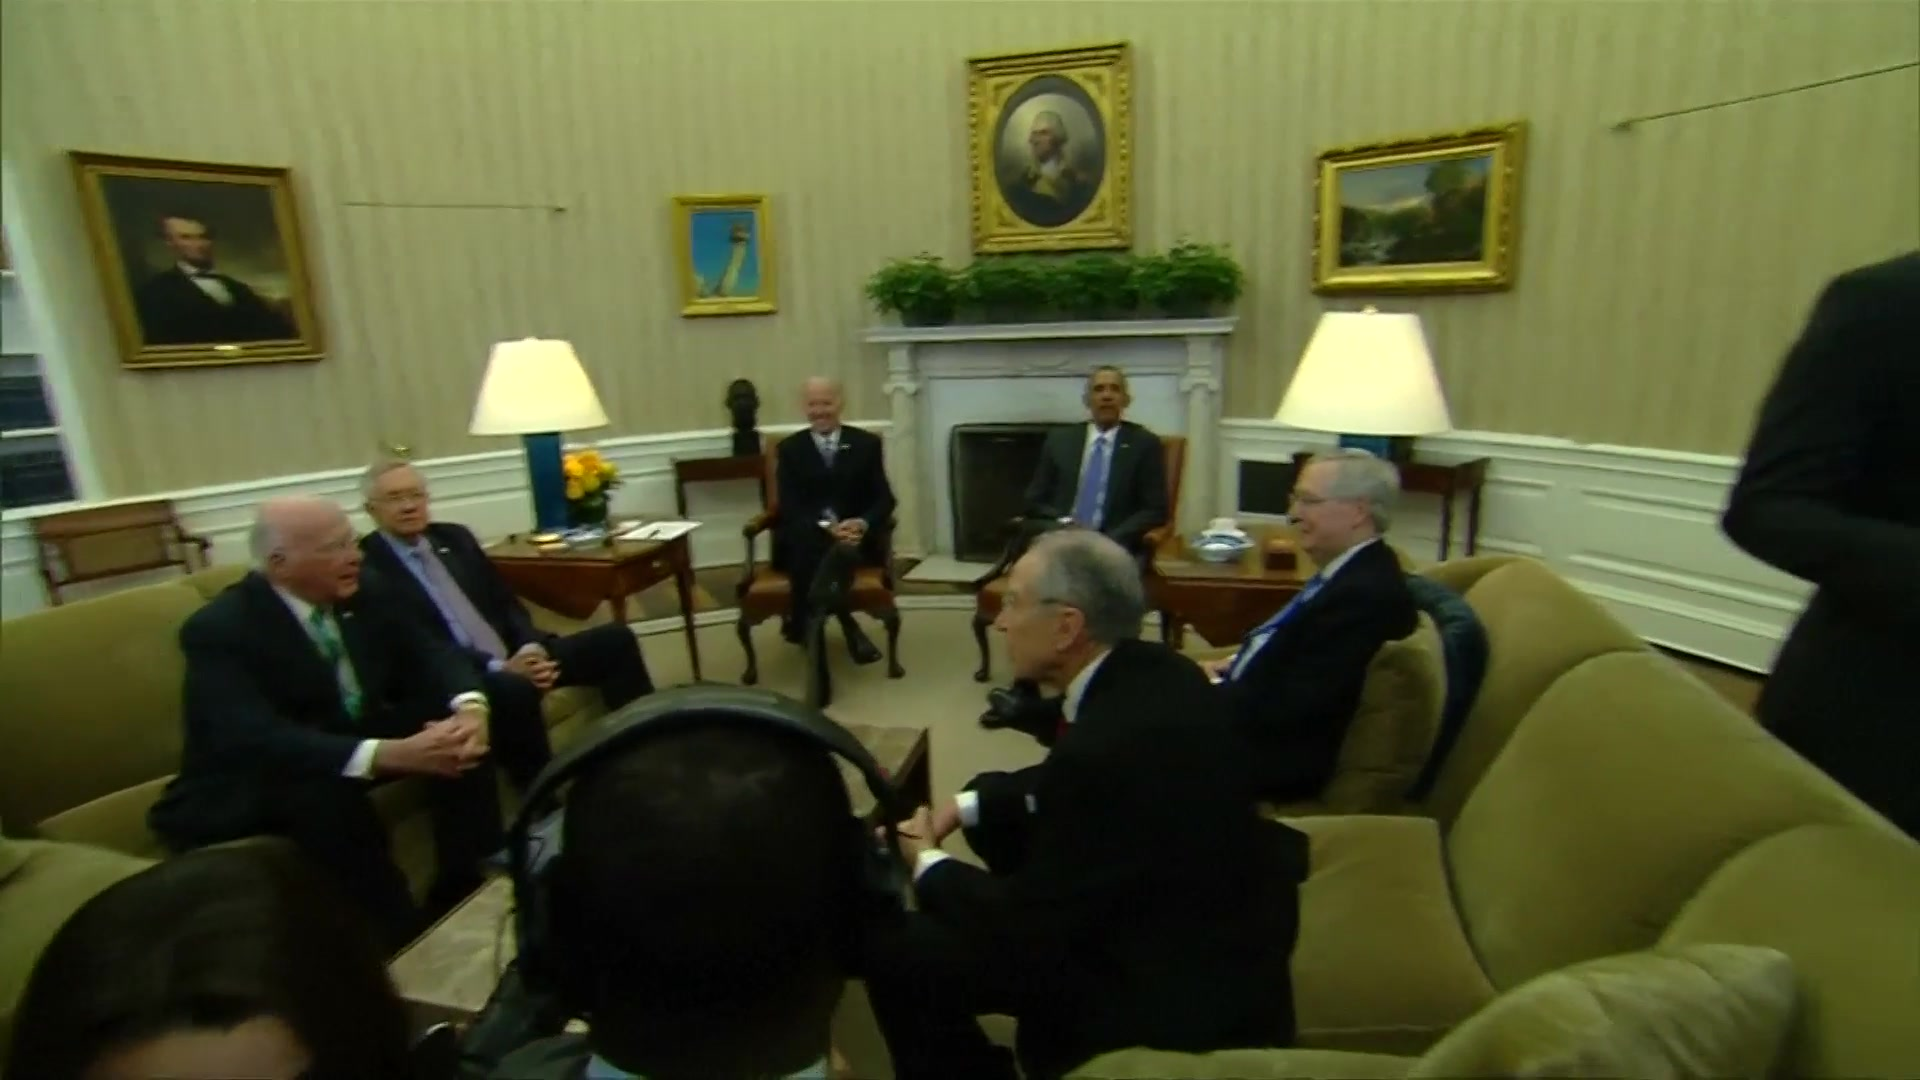 Obama Meets Republicans to Discuss Scalia Successor